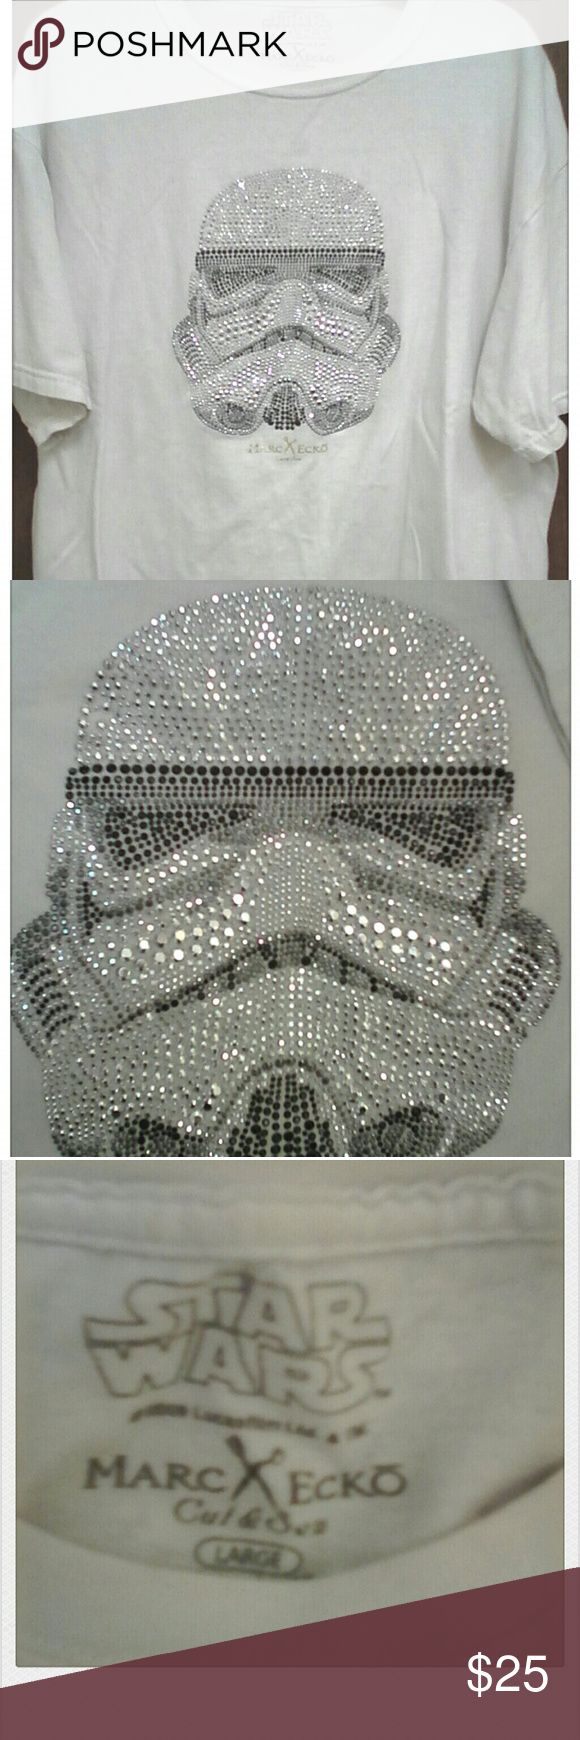 """Marc Ecko """"Star Wars"""" Stormtrooper t-shirt Really shiny Stormtrooper made from silver and black metal studs-Always gets compliments!! Star Wars/Marc Ecko Shirts Tees - Short Sleeve"""